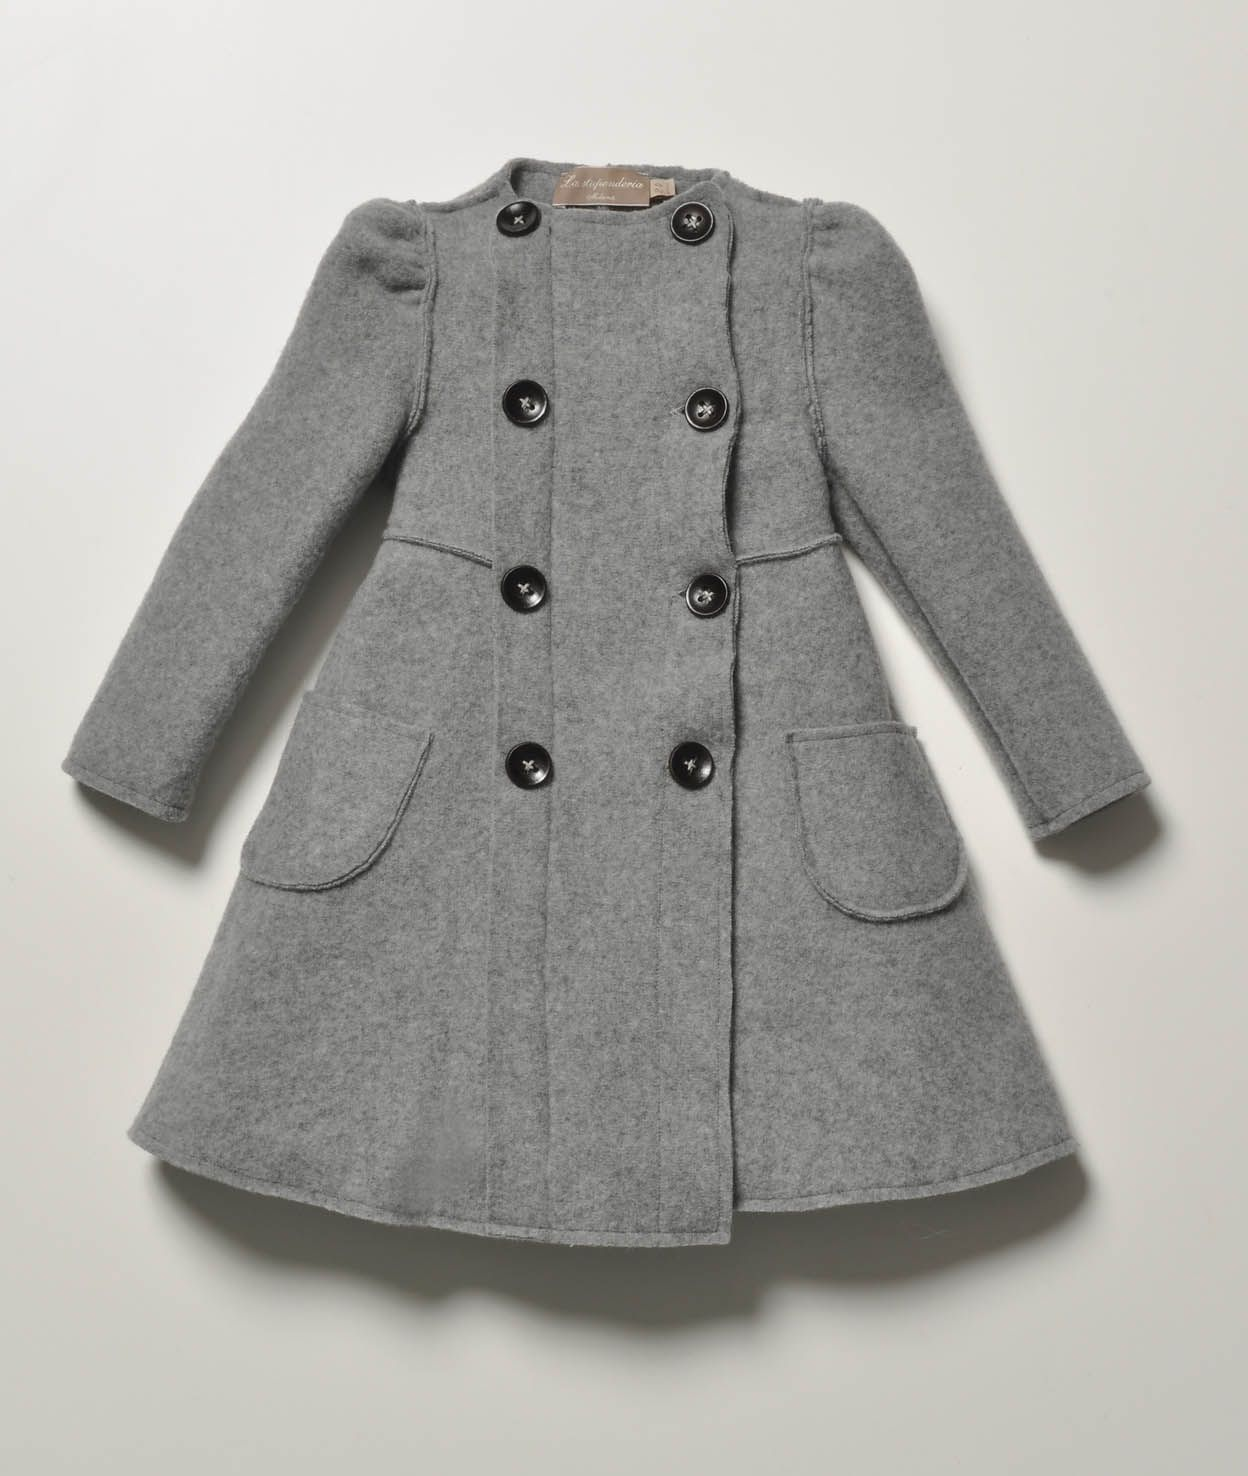 La Stupenderia Girls Grey Mathilde Wool Coat | Kiddo... Mix n ...